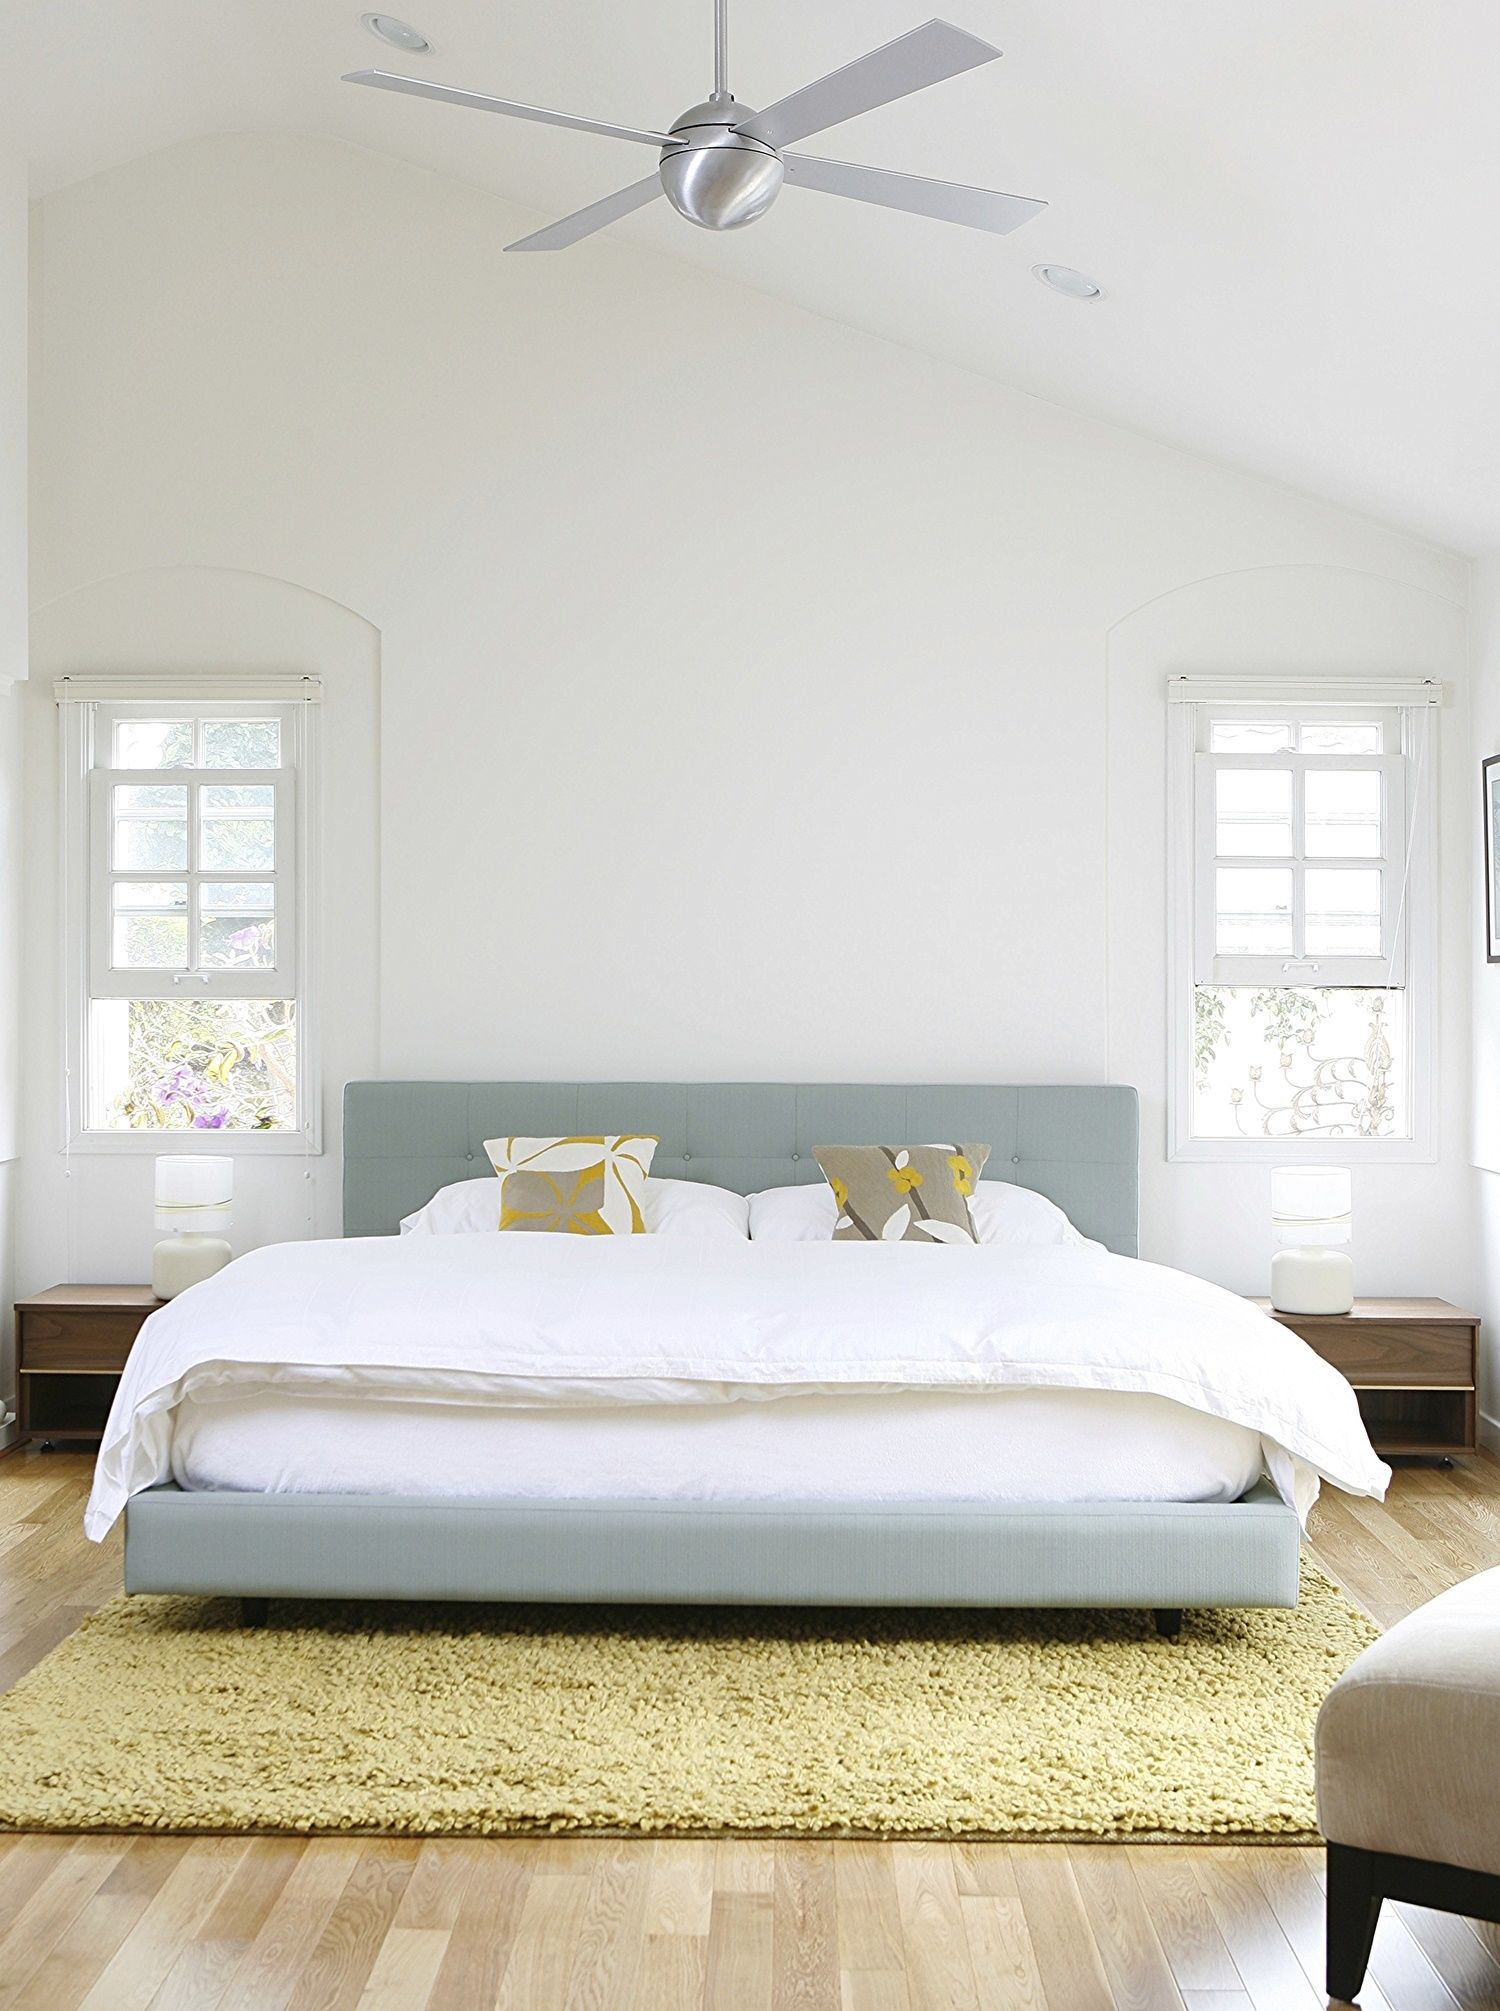 Latest bedroom interior design trends pin by pixameter on design spaces  pinterest  spaces